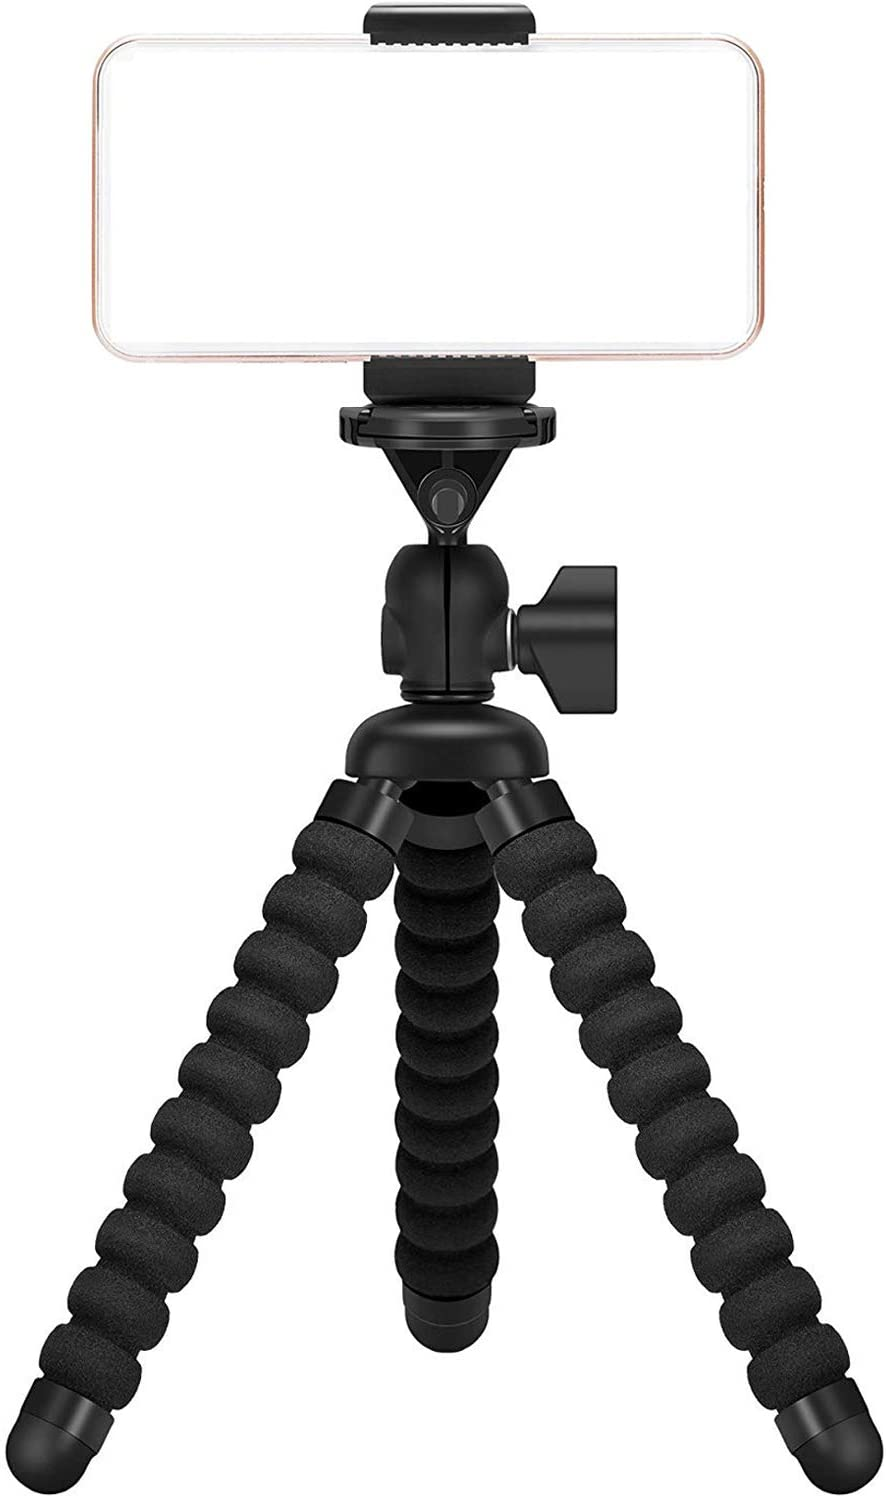 Ailun Digtal Camera Tripod Mount Stand Camera Holder for iPhone 11/11 Pro/11 Pro Max/X Xs XR Xs Max 8 7 Plus Digtal Camera Galaxy s20, s20+ S20Ultra s10 Plus S9+ Note 10 Camera and More Black: Electronics